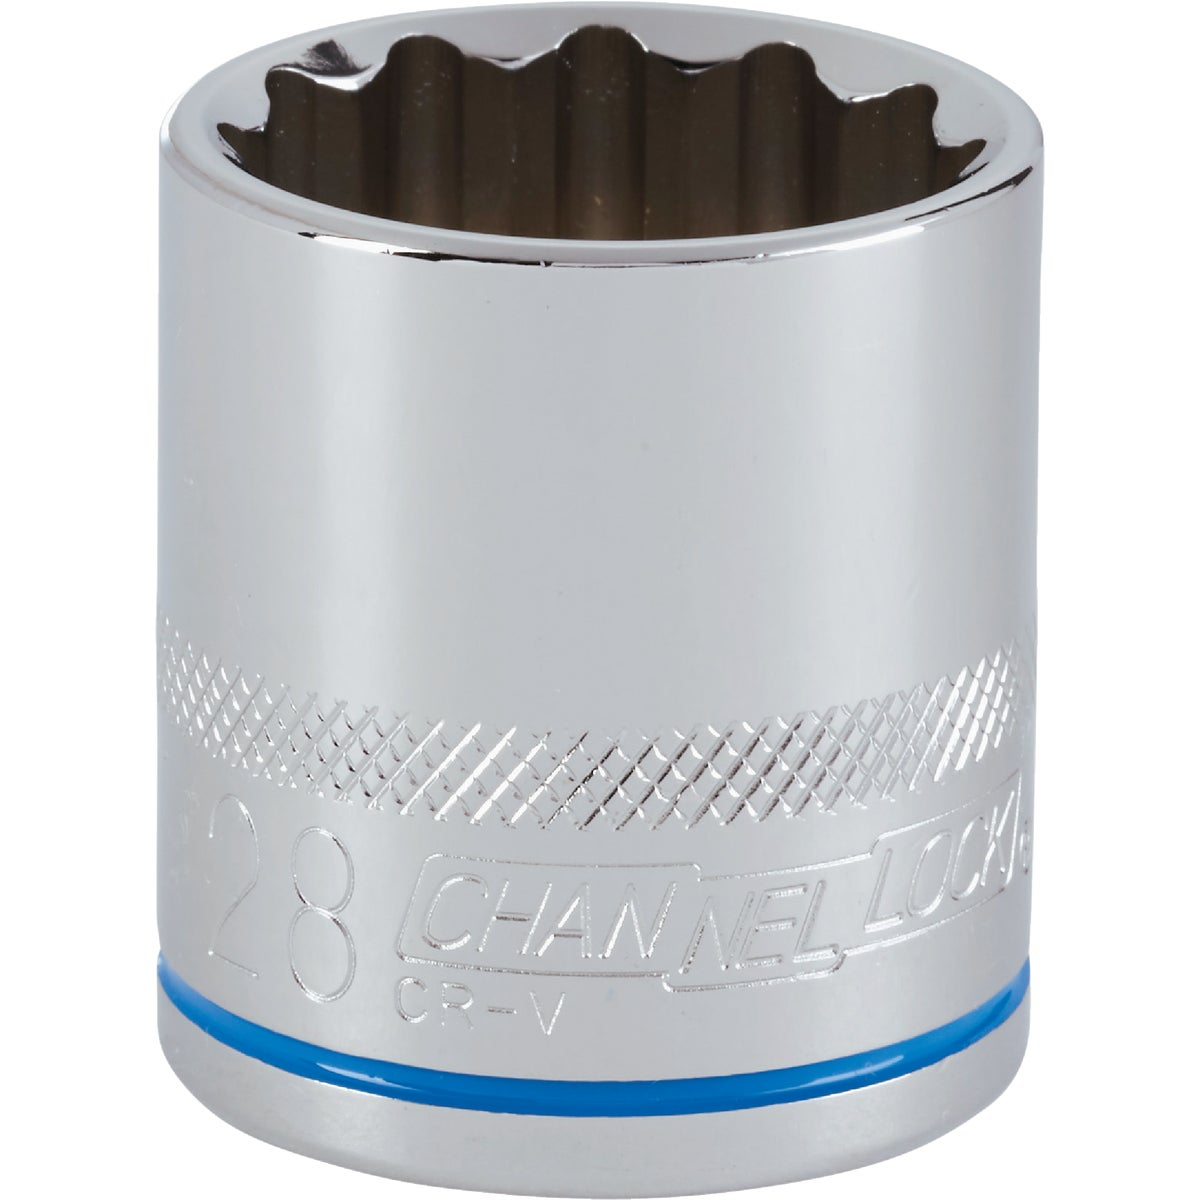 28MM 1/2 DRIVE SOCKET - 12728 by Apex Tool Group